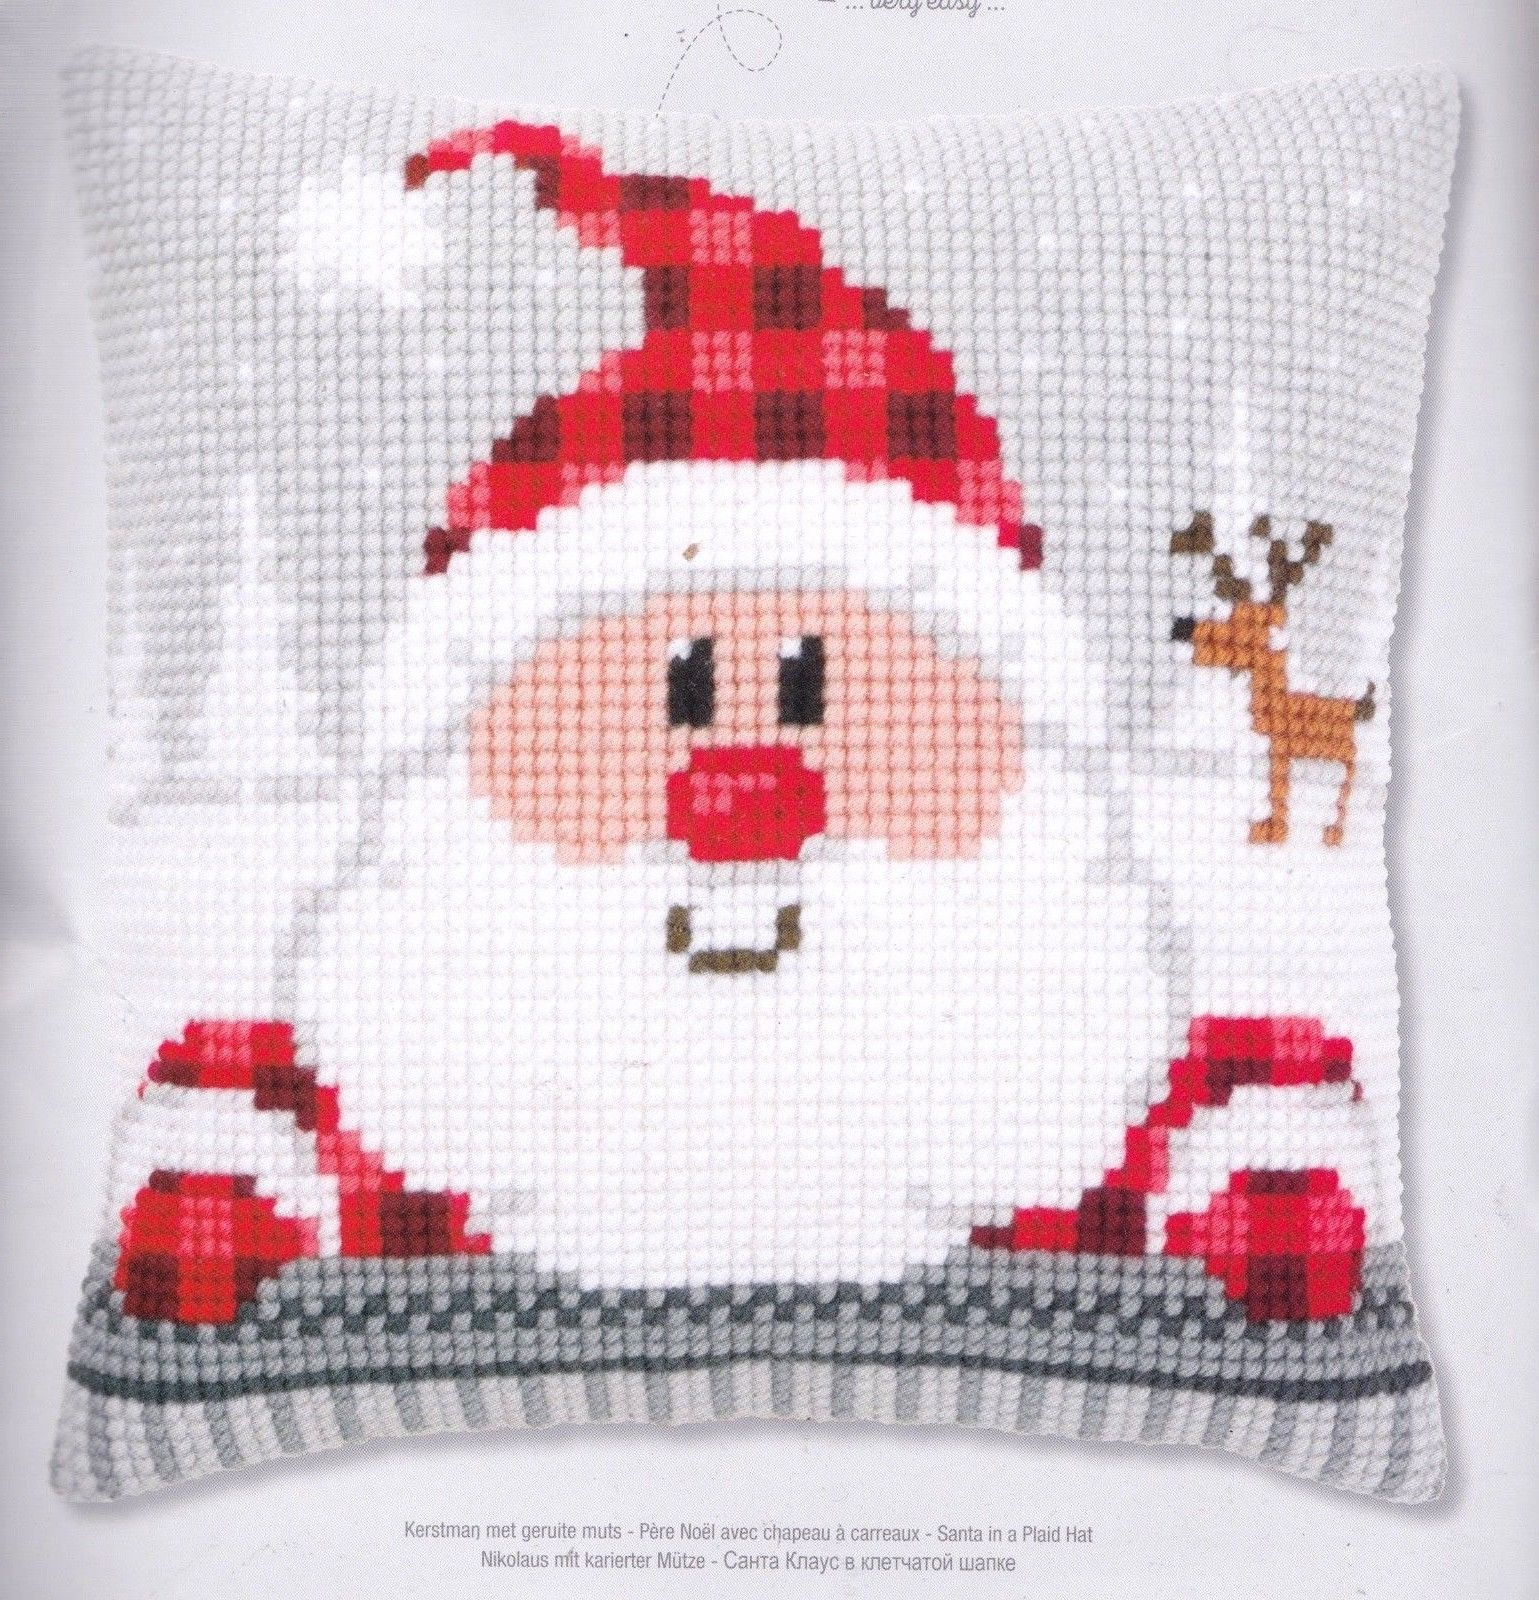 "Vervaco Holiday Santa Plaid Hat Yarn Cross Stitch Needlepoint 16"" Pillow Top Kit - $52.95"